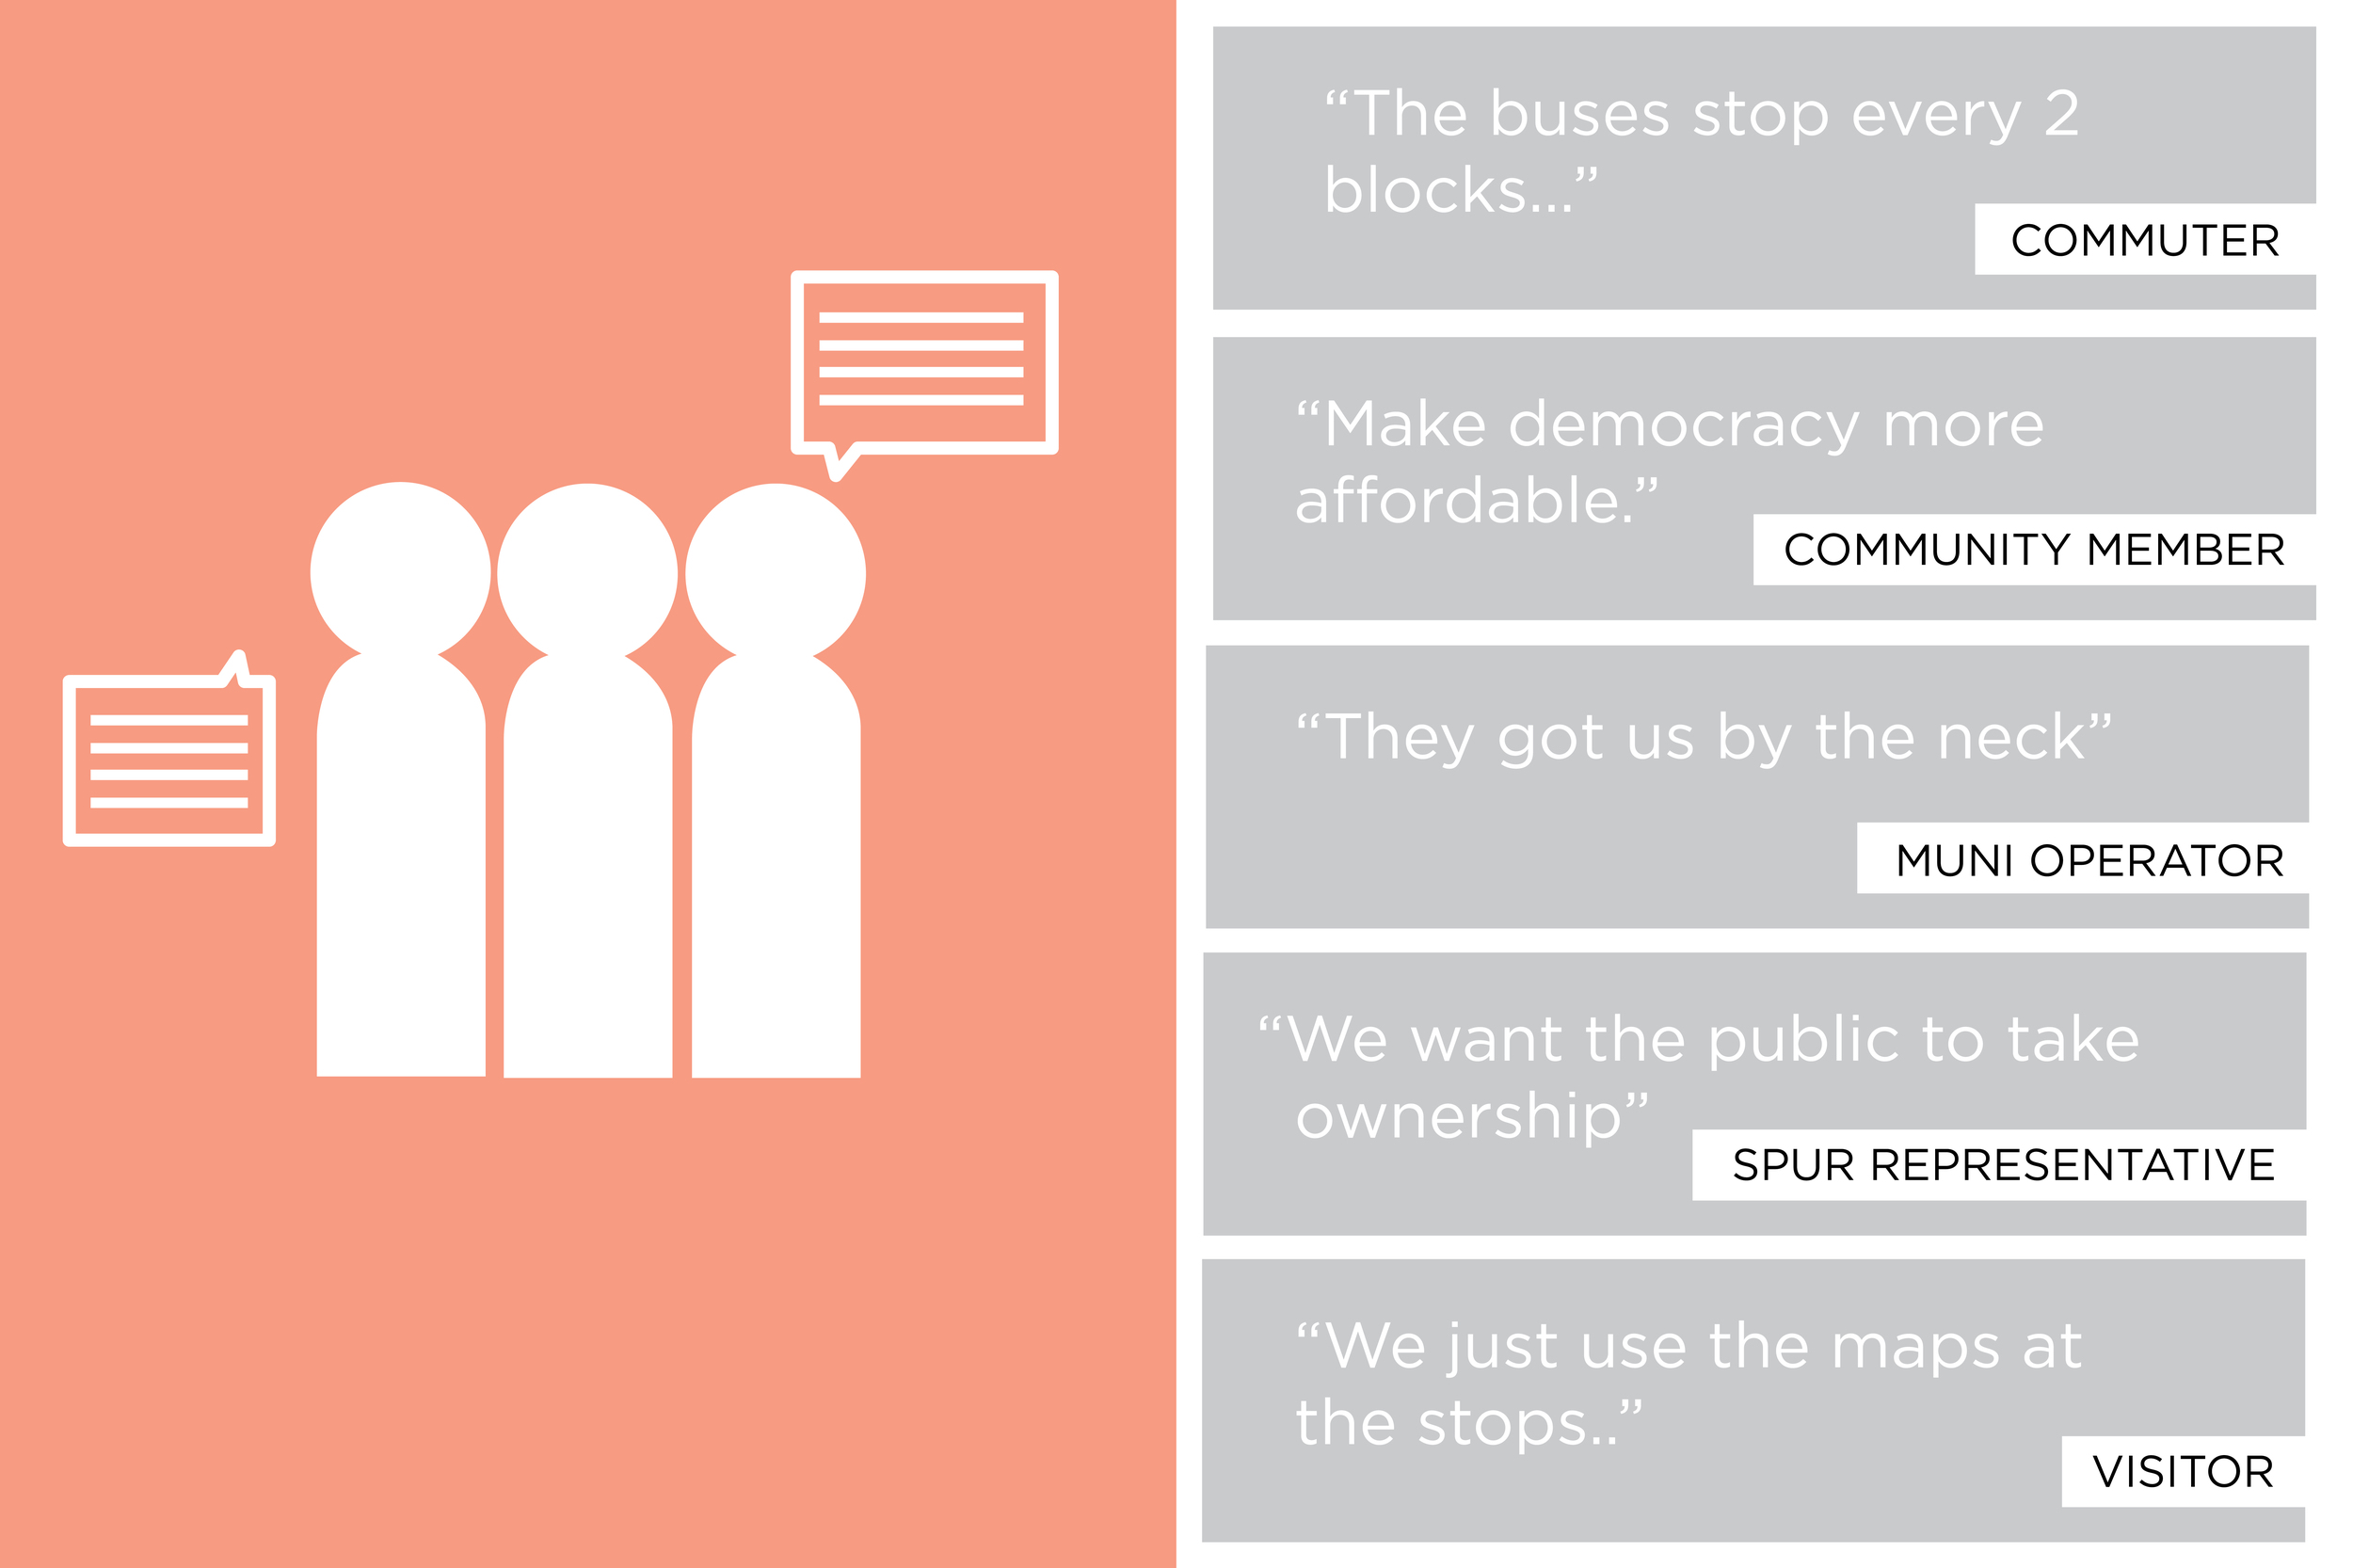 I spoke to a variety of stakeholders involved including MUNI operators, commuters, visitors, a transit authority consulting agency, SFMTA employee, and a SPUR representative. With the SFMTA user audience being the entire general public, I encountered many different opinions and user stories.